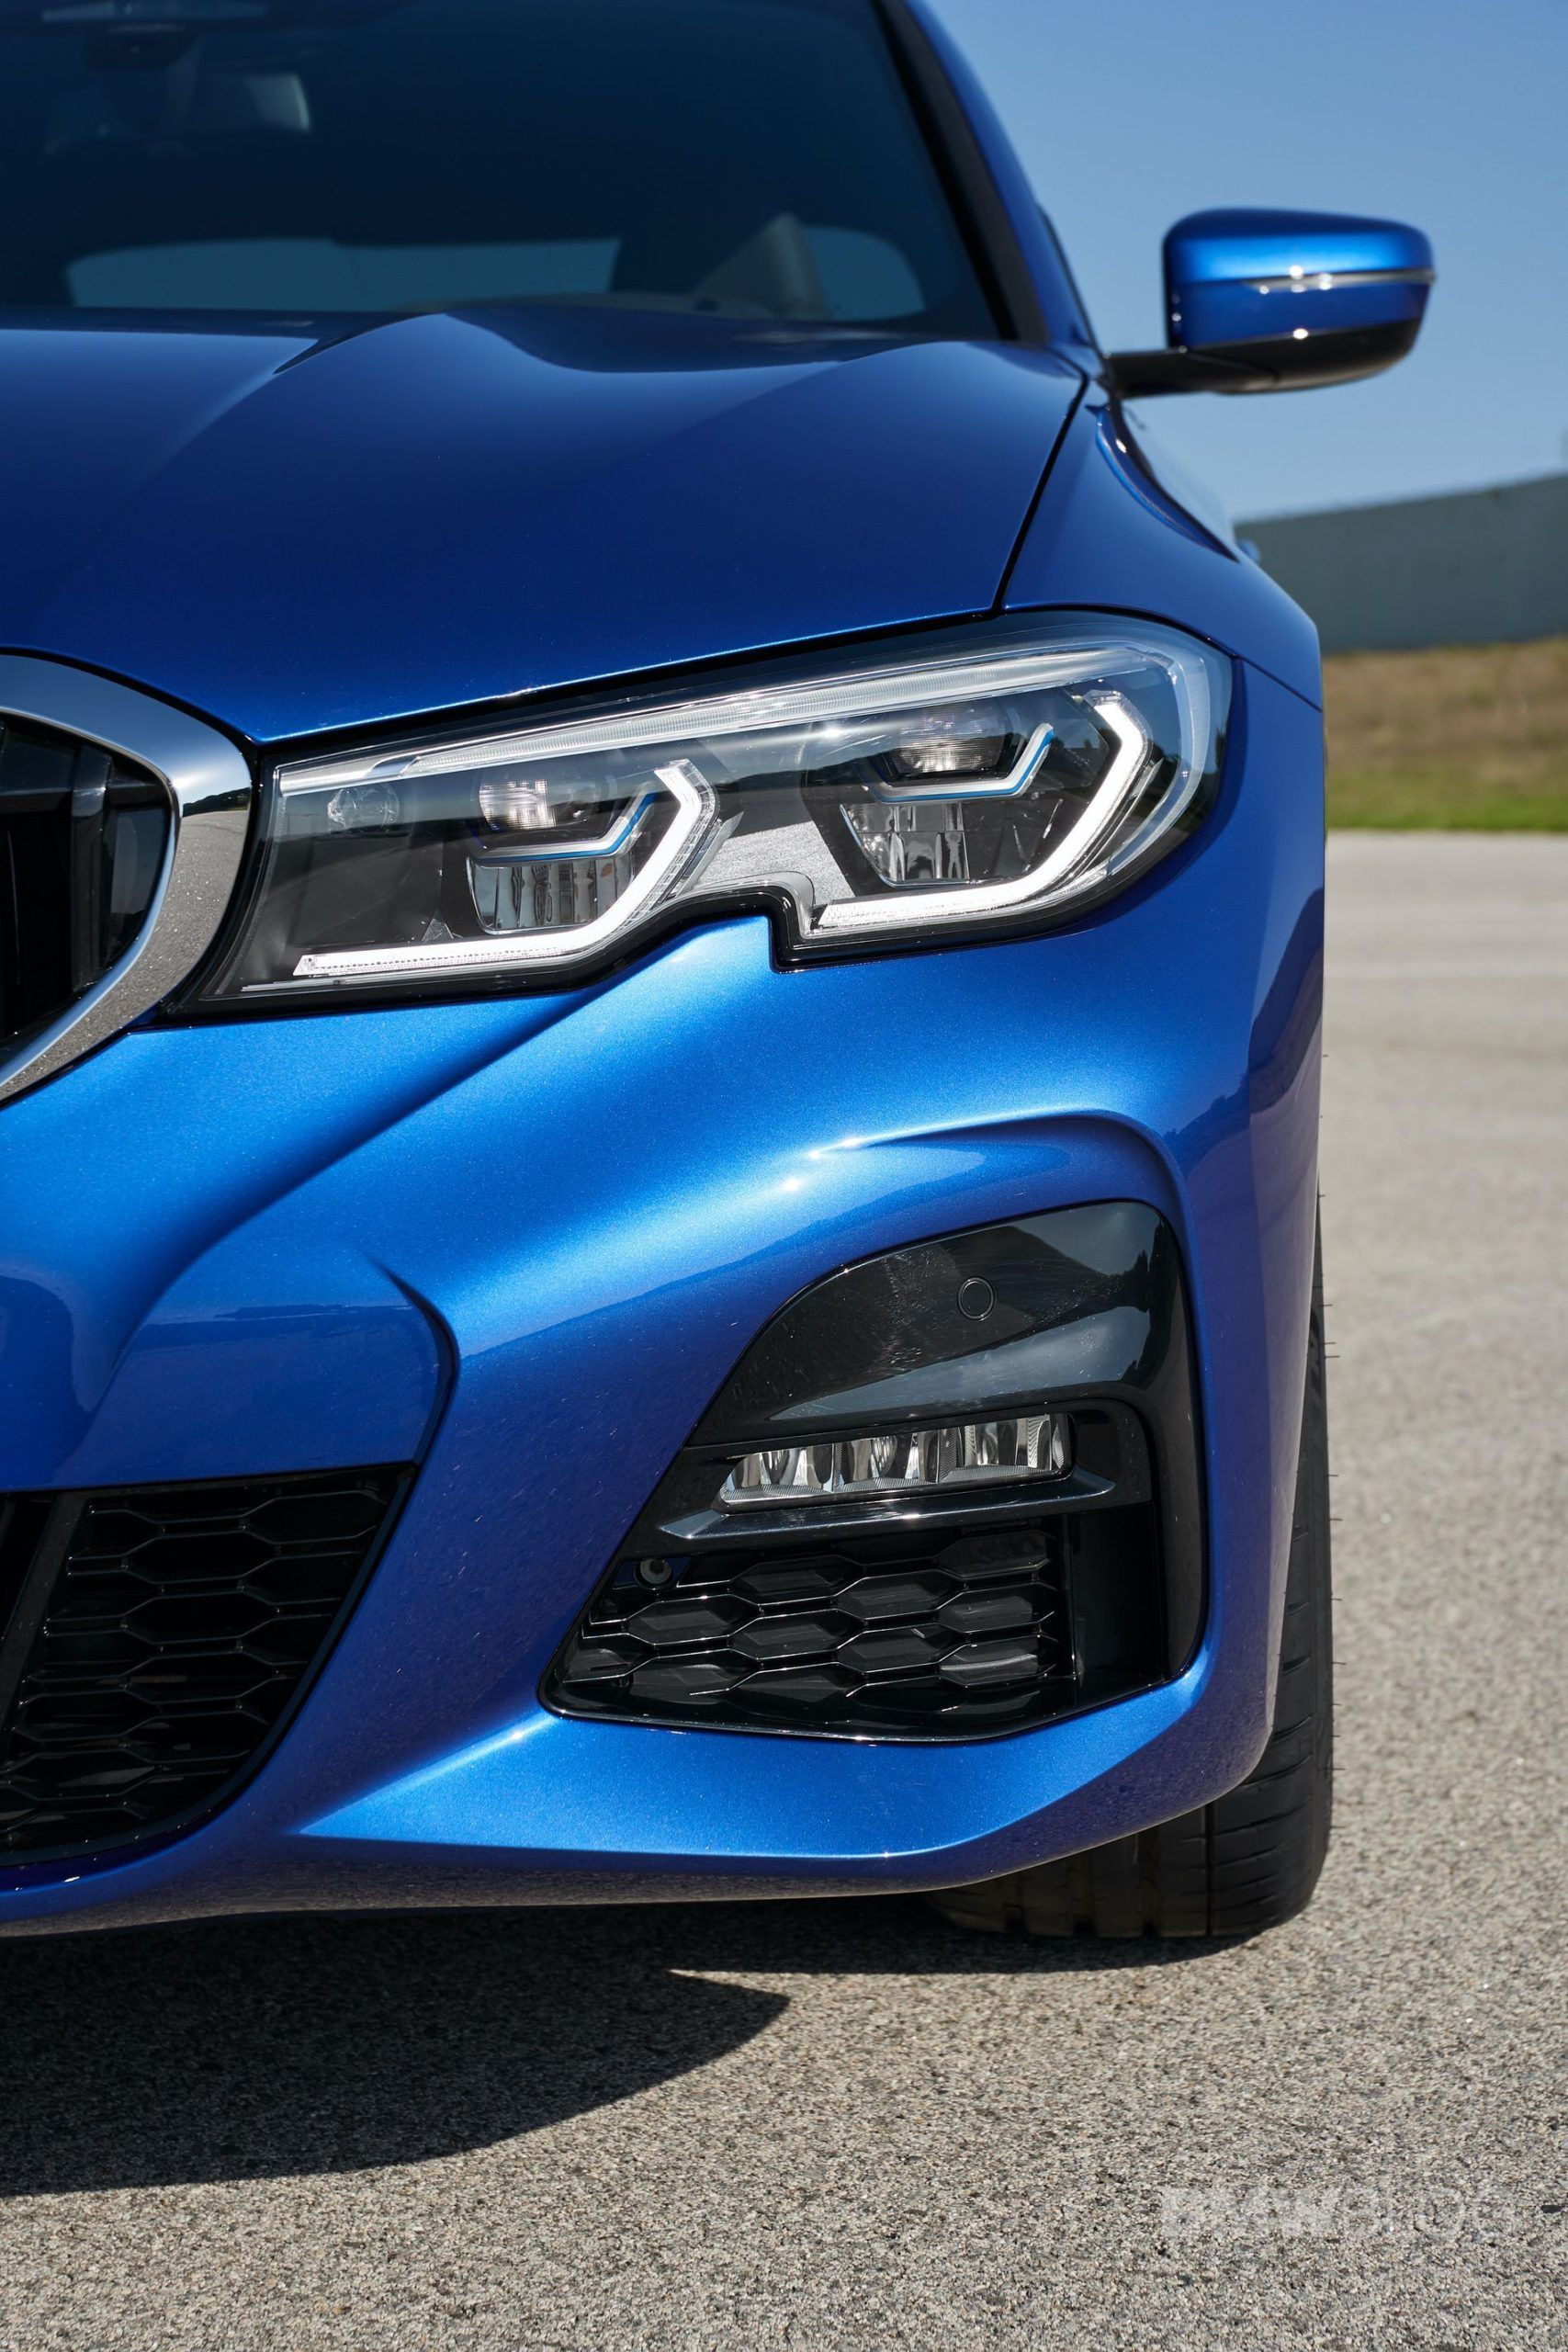 G20 Bmw 3 Series Headlights Are Throwback To E46 Caraudio Bmw Bmw3series E46 G20 Headlights Series Throwback In 2020 Bmw 3 Series Bmw Bmw Classic Cars